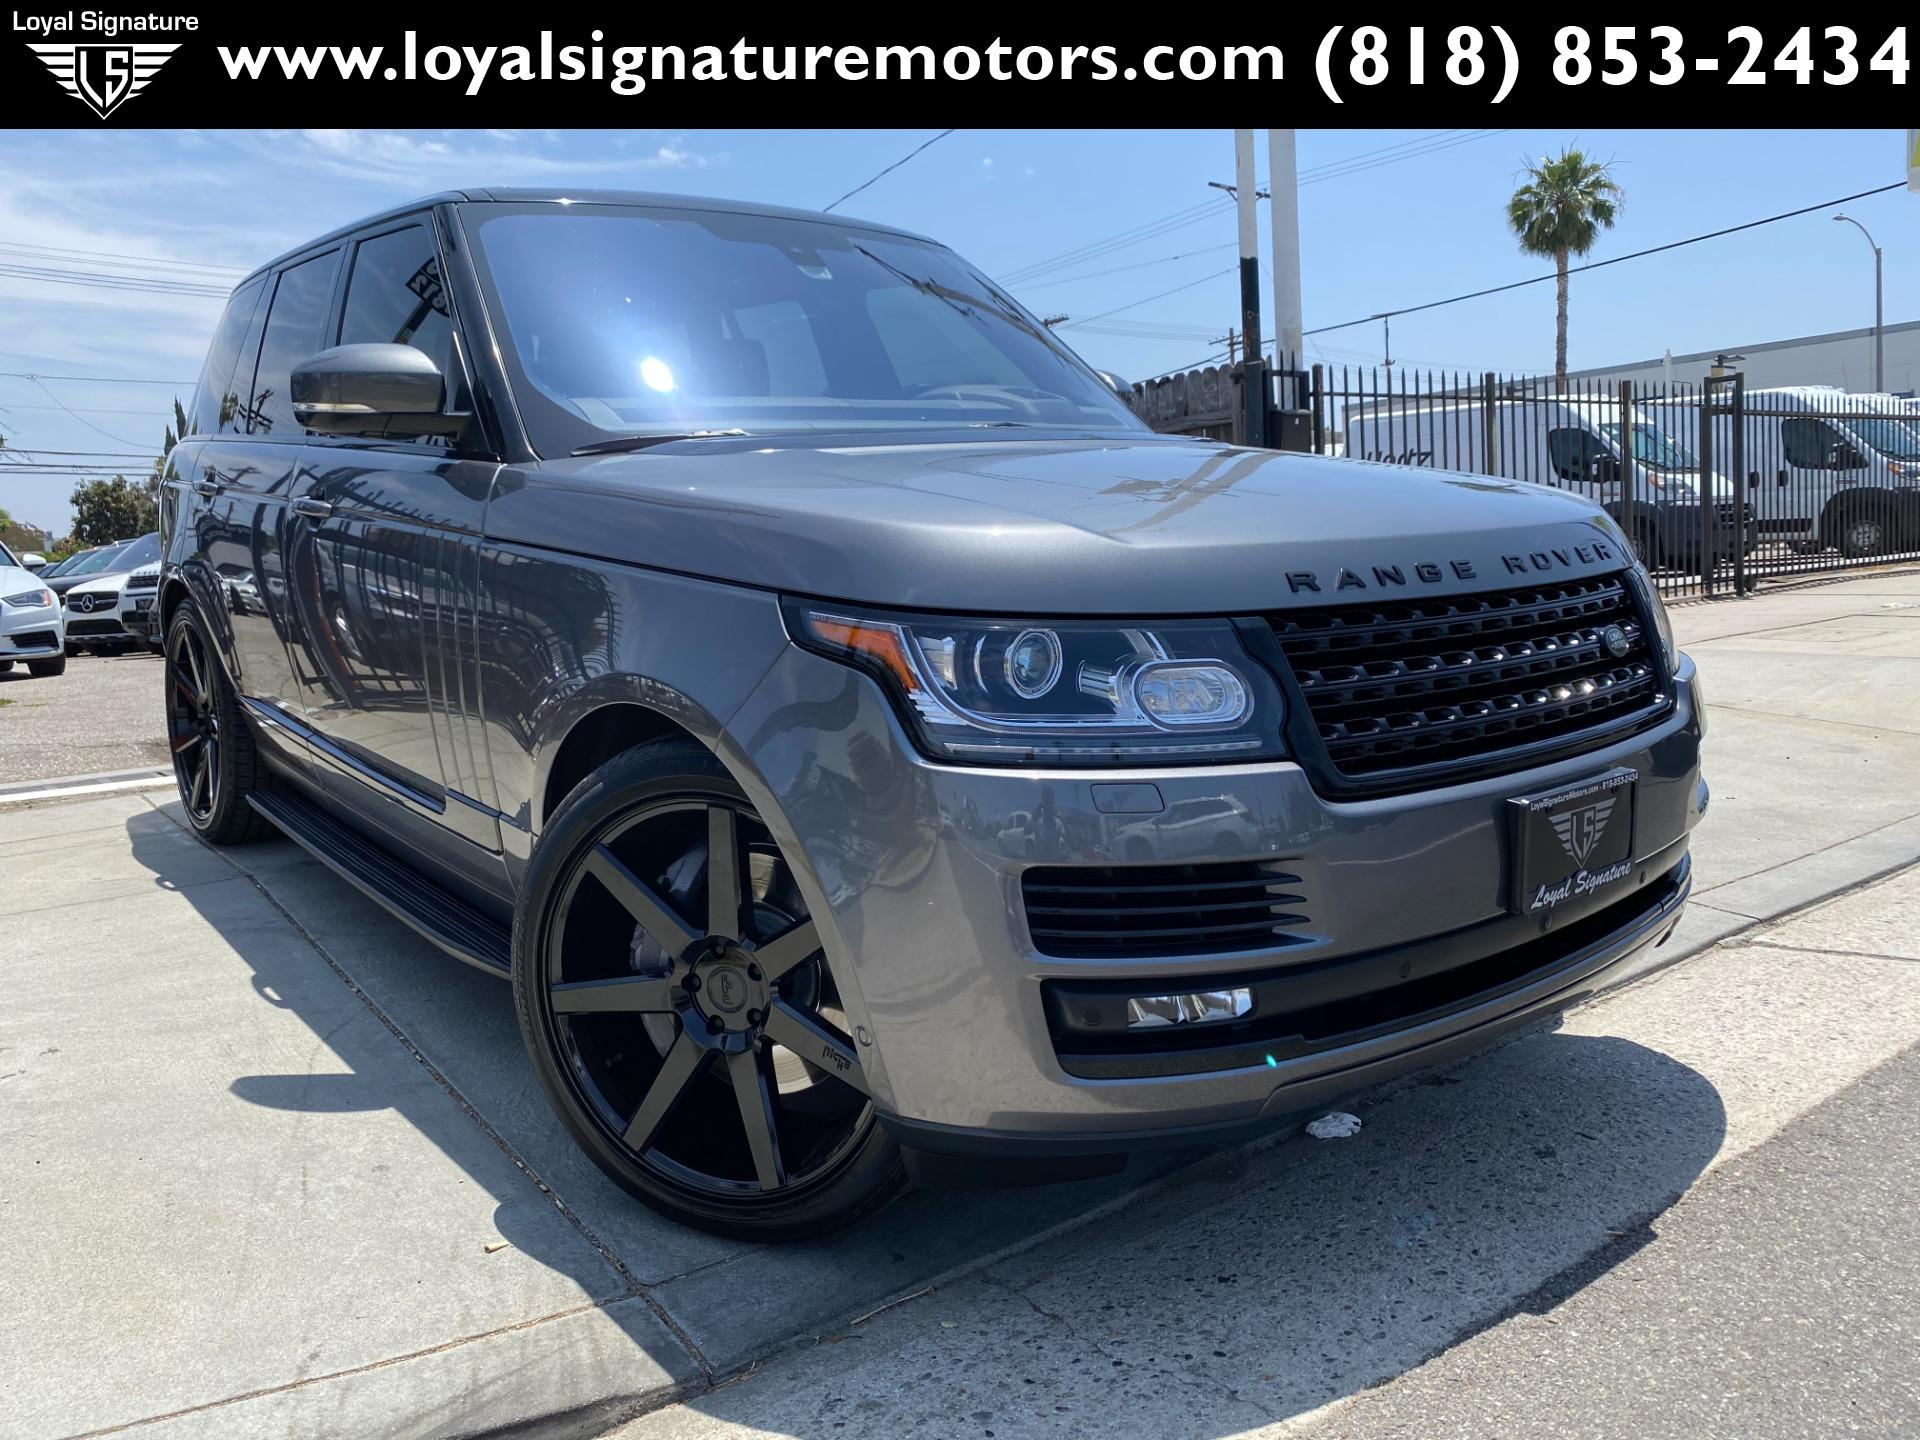 Used 2016 Land Rover Range Rover Supercharged | Van Nuys, CA